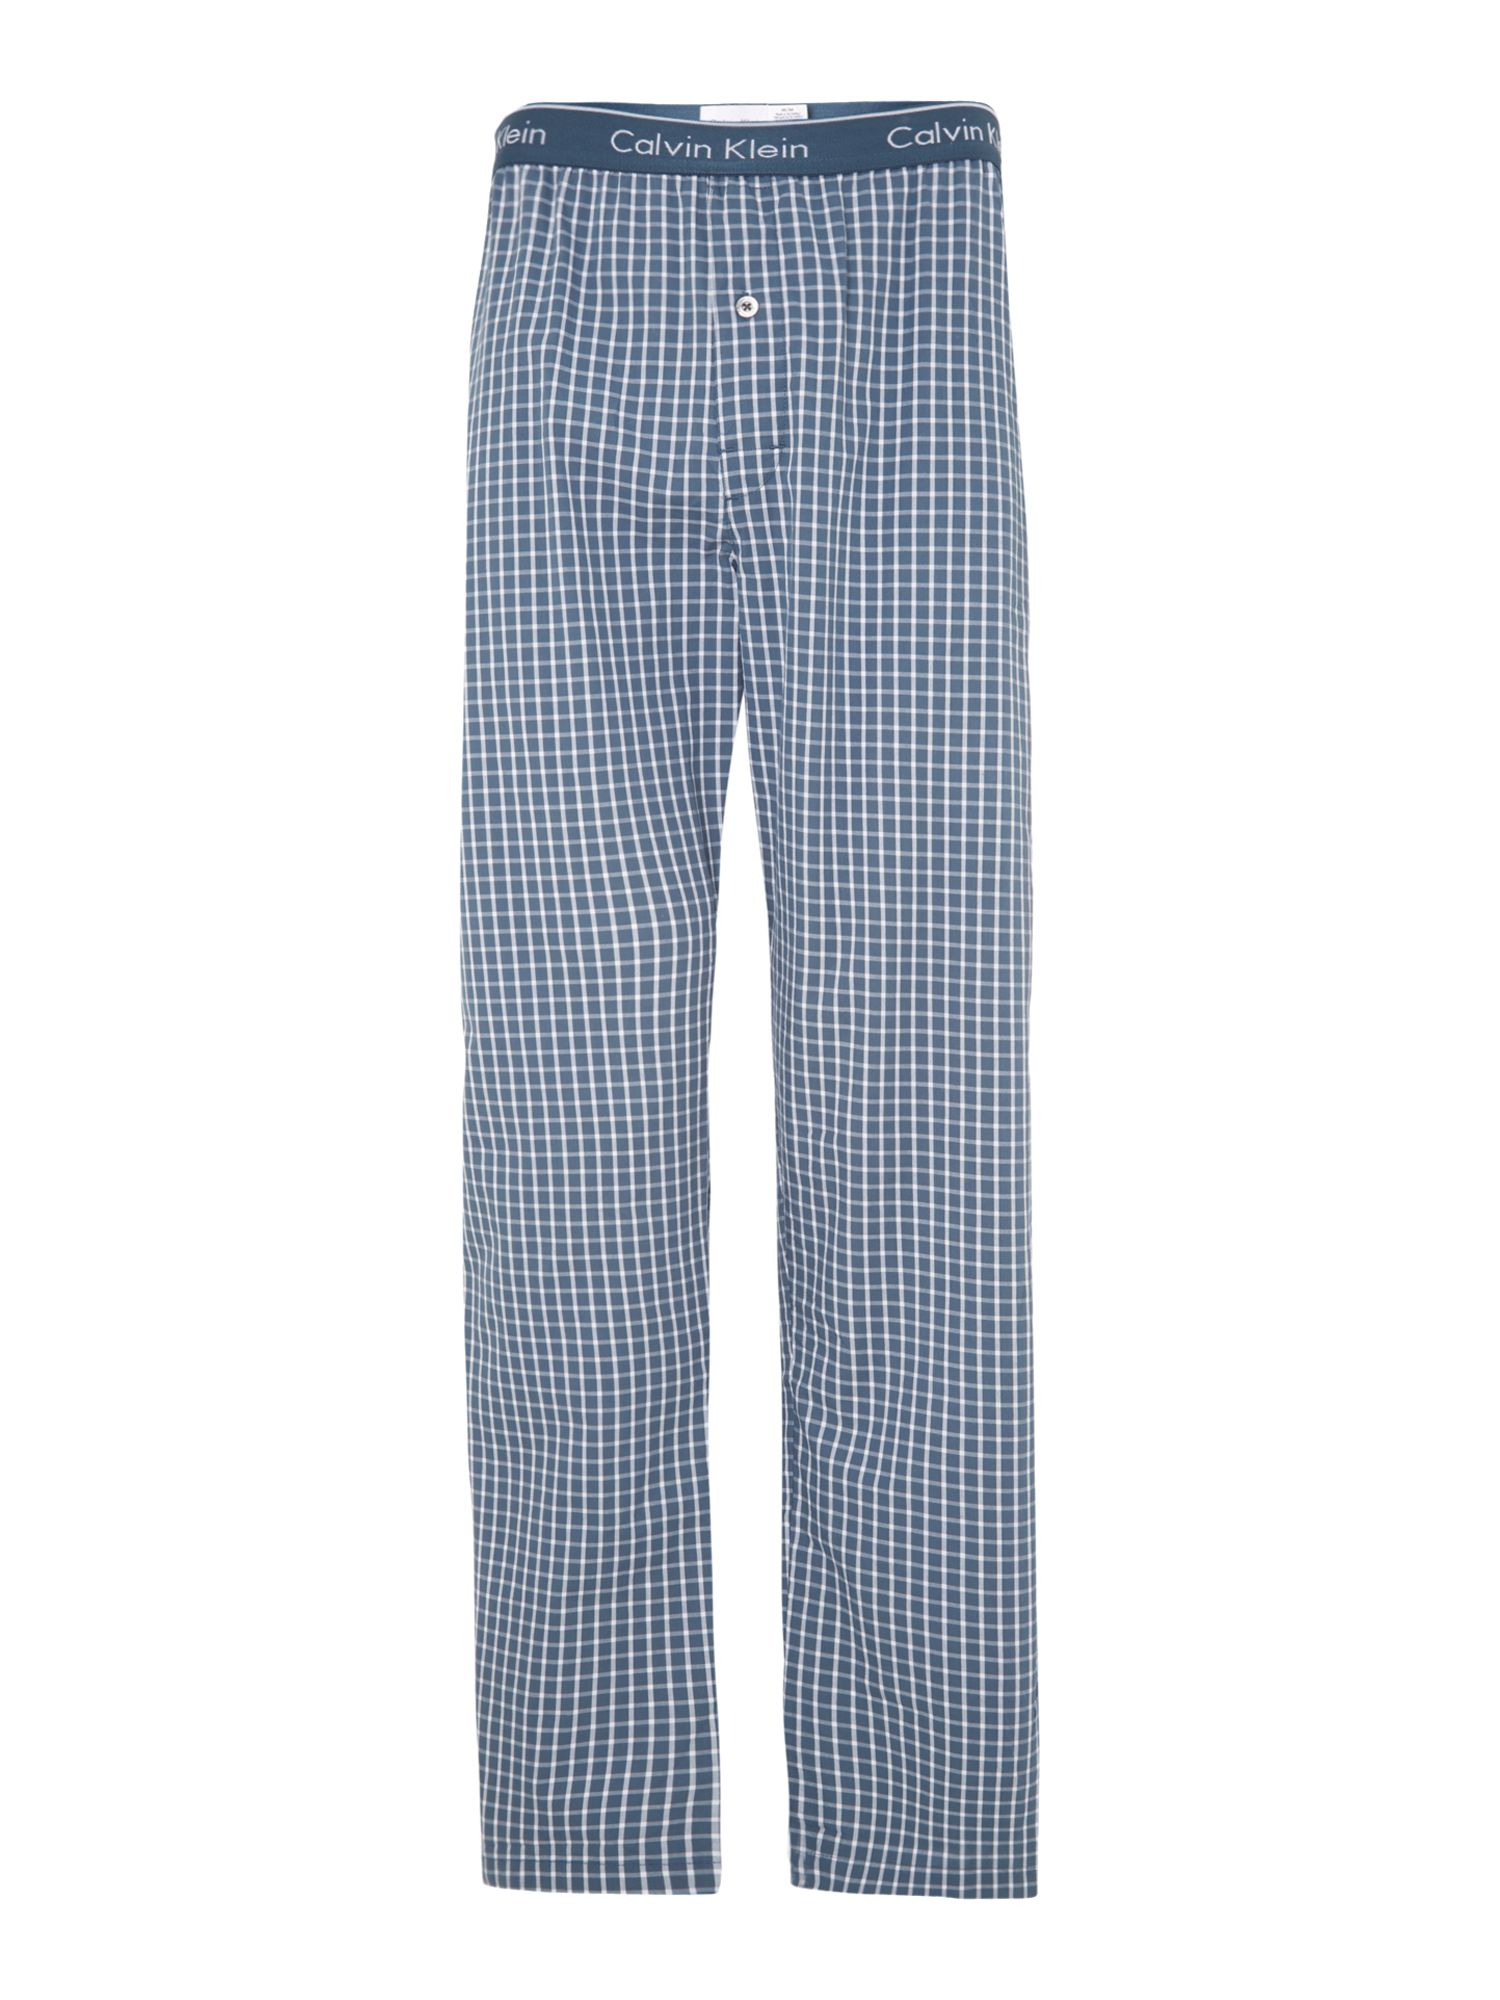 Micro plaid nightwear pant